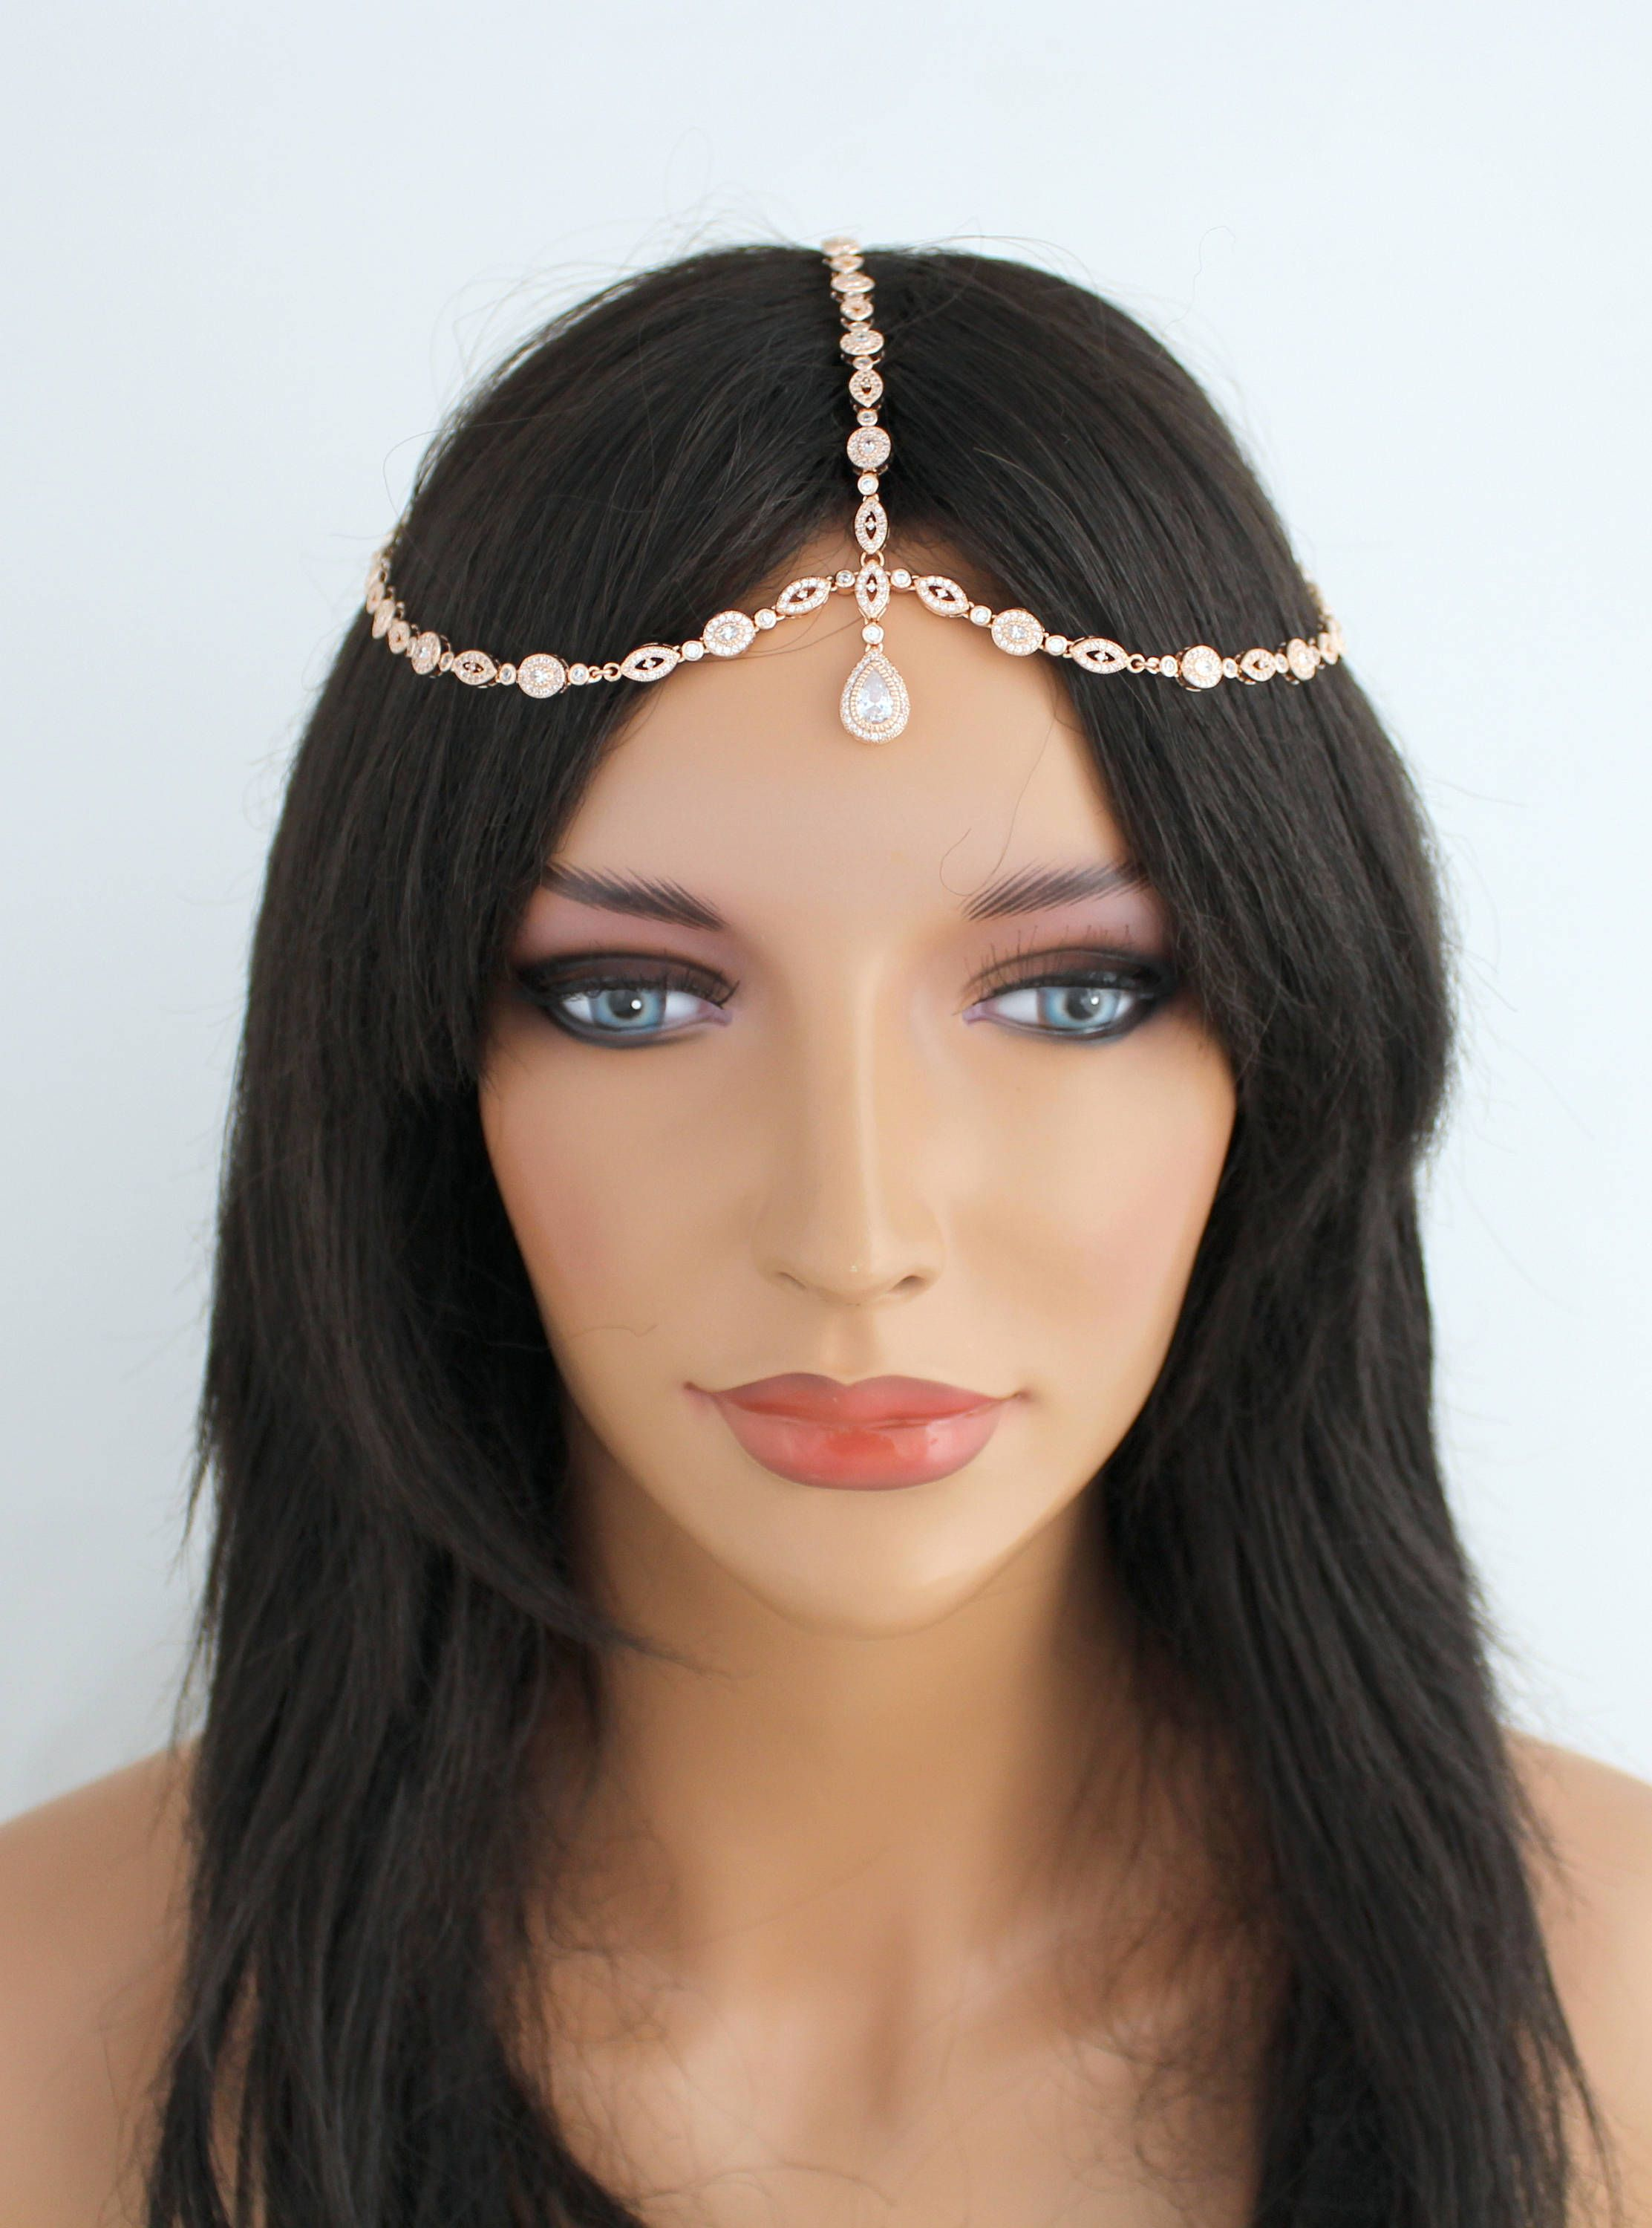 rose gold headpiece boho wedding headpiece bridal hair